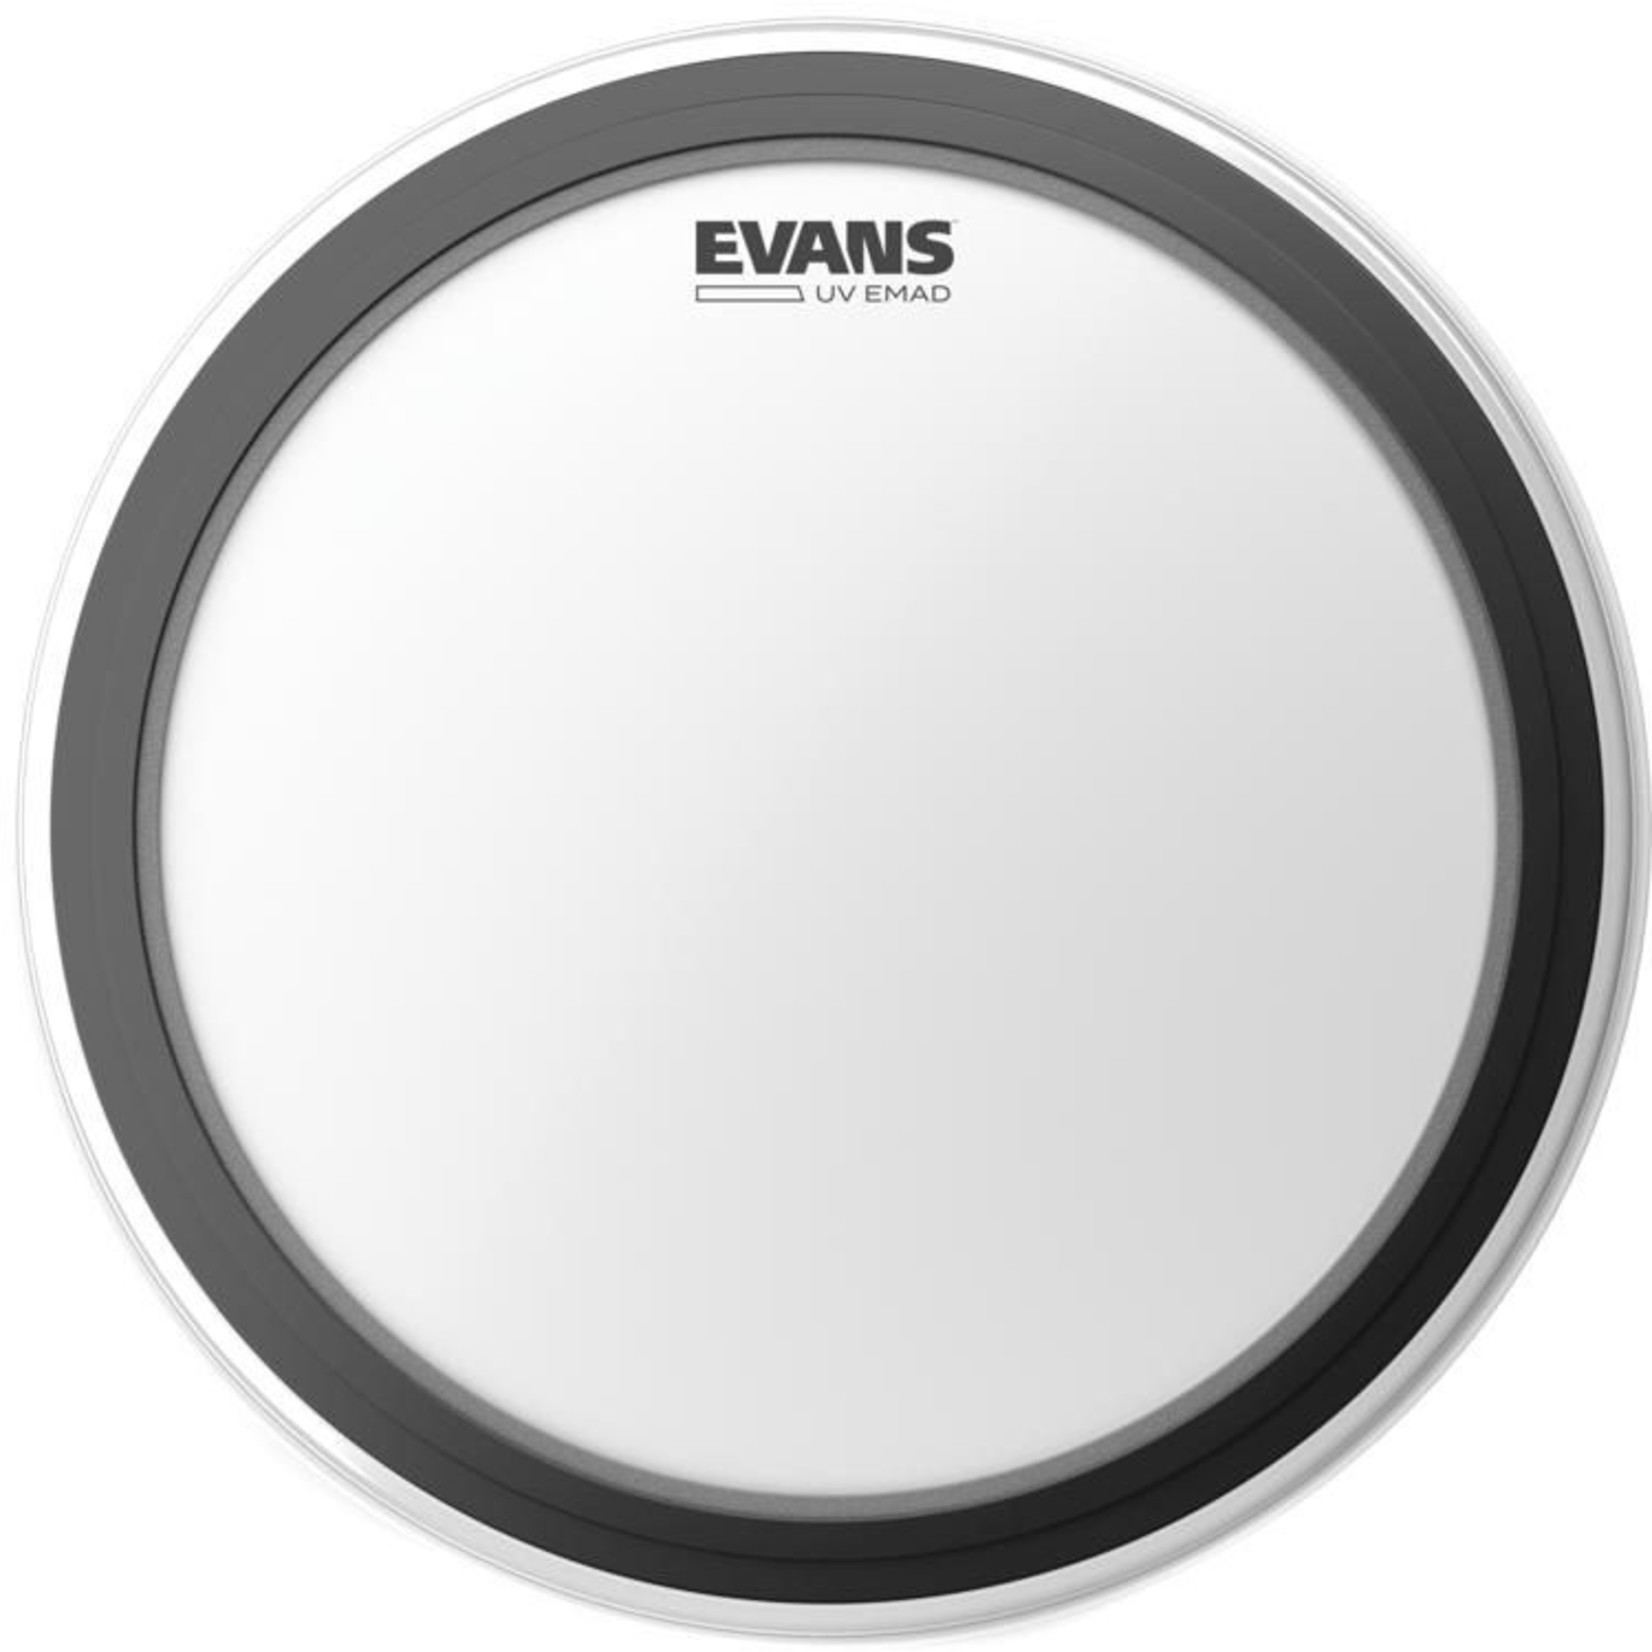 Evans Evans Coated UV EMAD Bass Drum